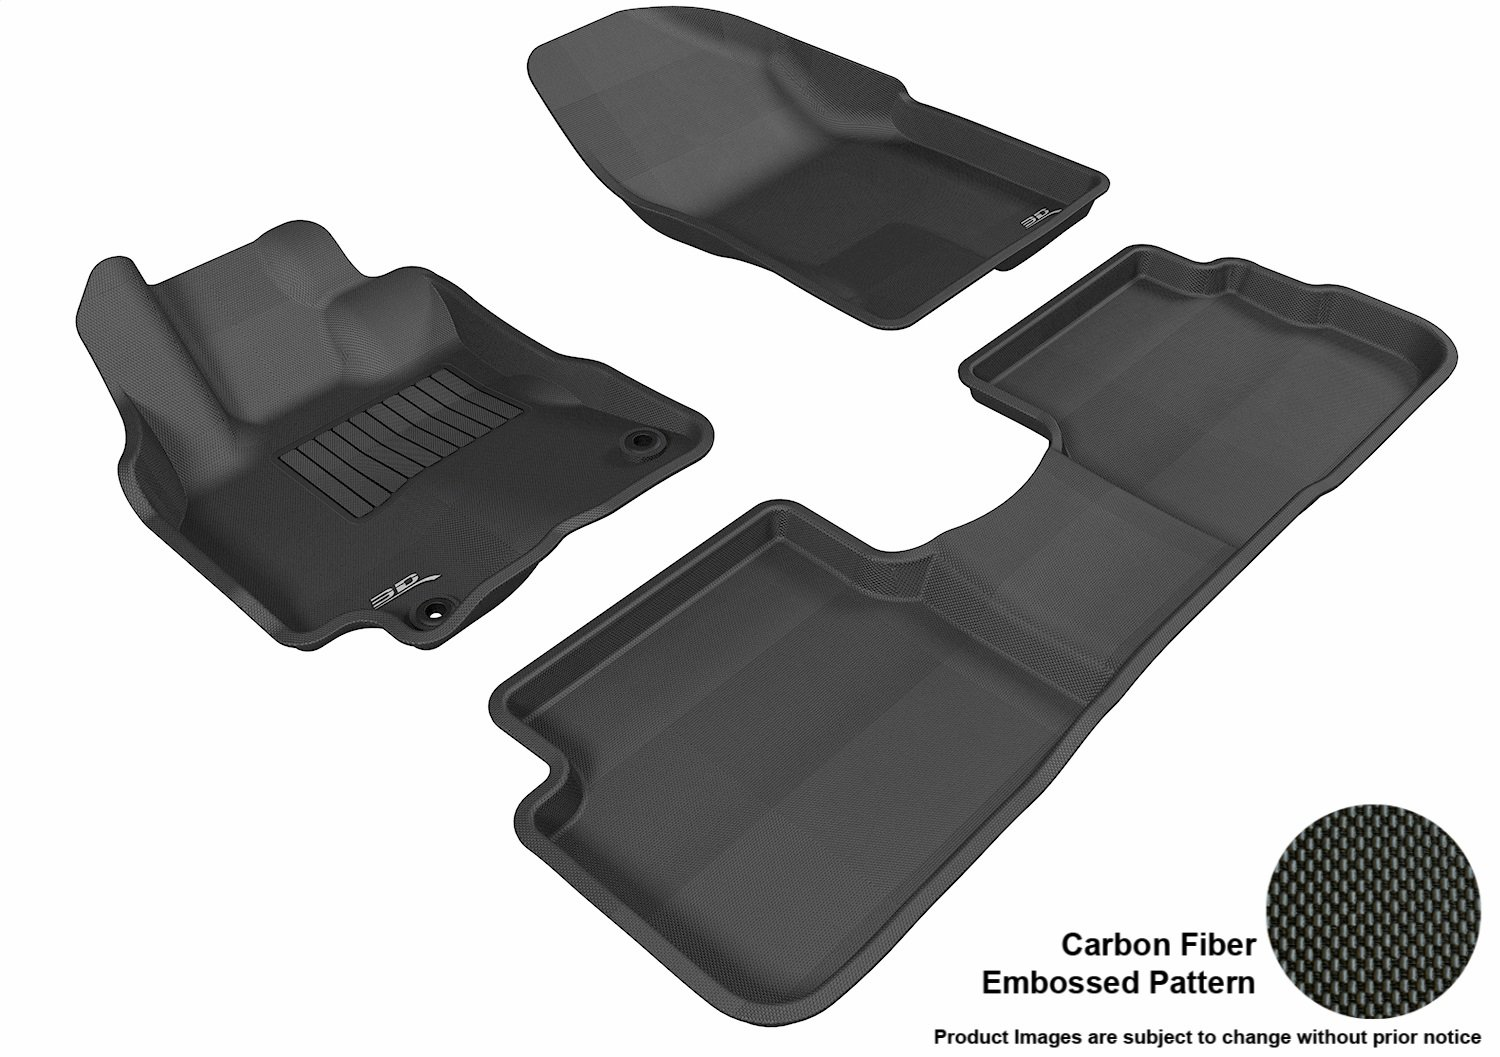 Tan 3D MAXpider Second Row Custom Fit All-Weather Floor Mat for Select Pontiac Vibe Models Kagu Rubber L1PA00121502